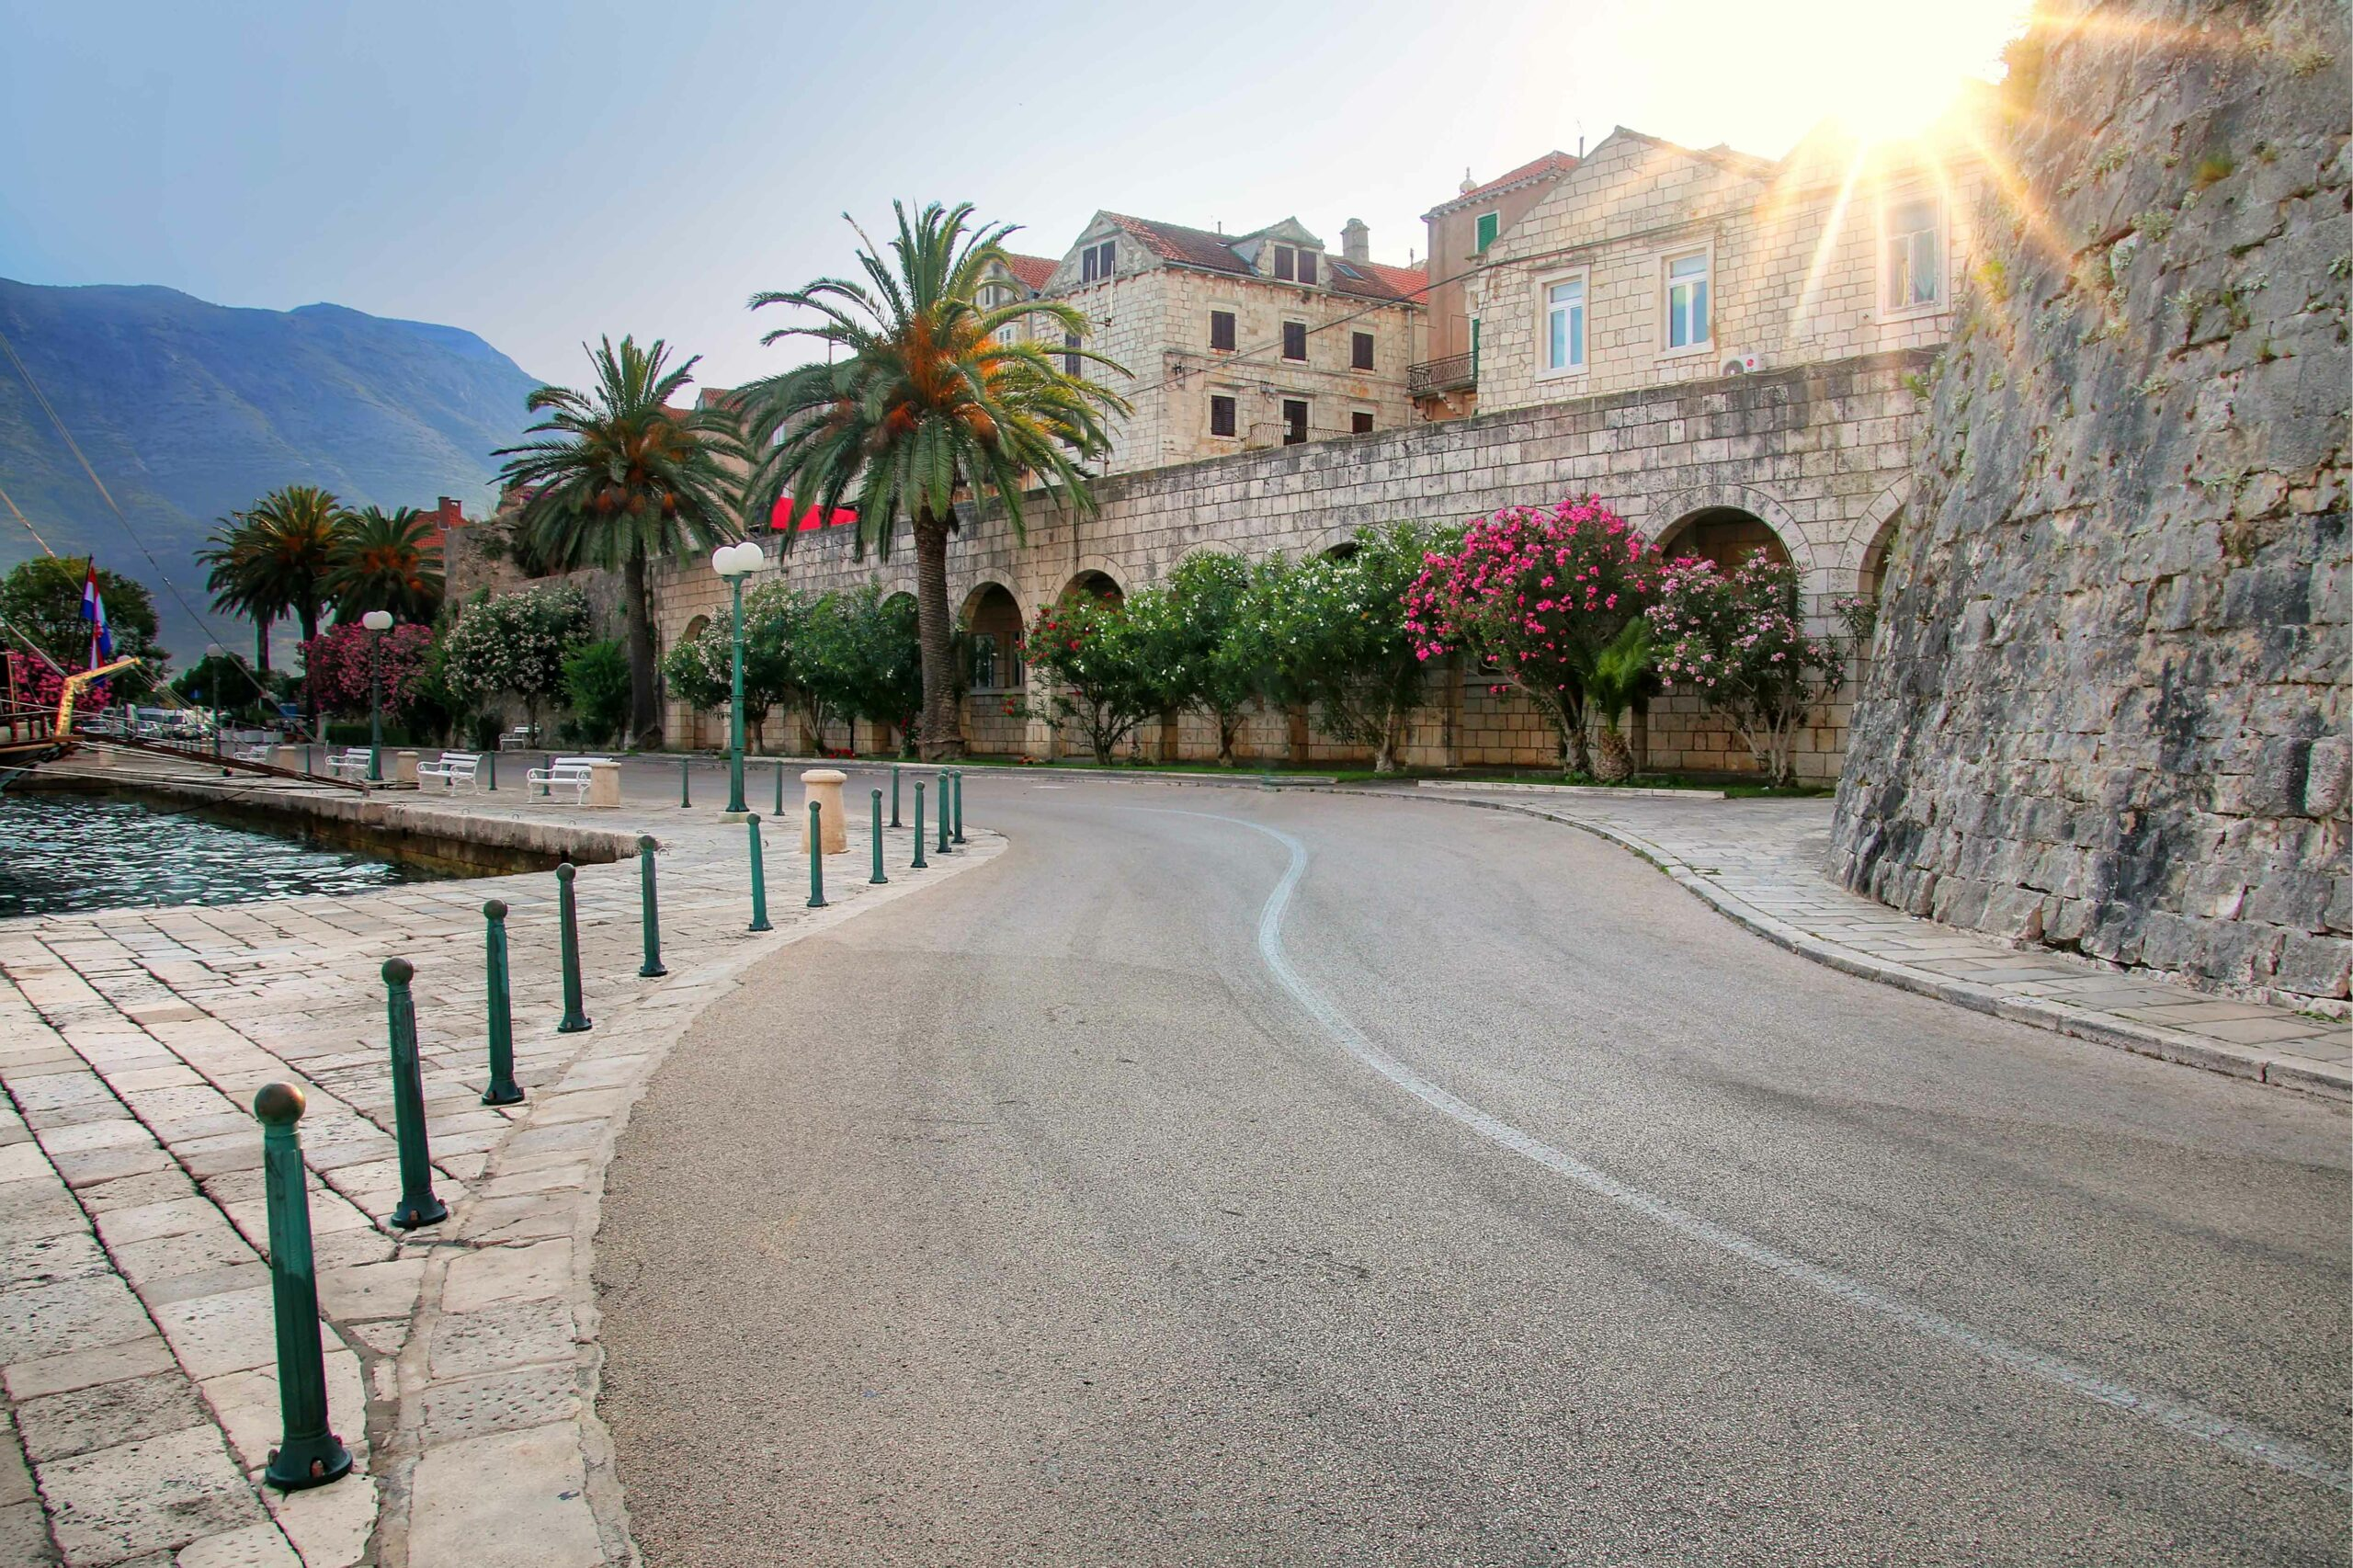 The roads outside the old town of Korcula, Croatia